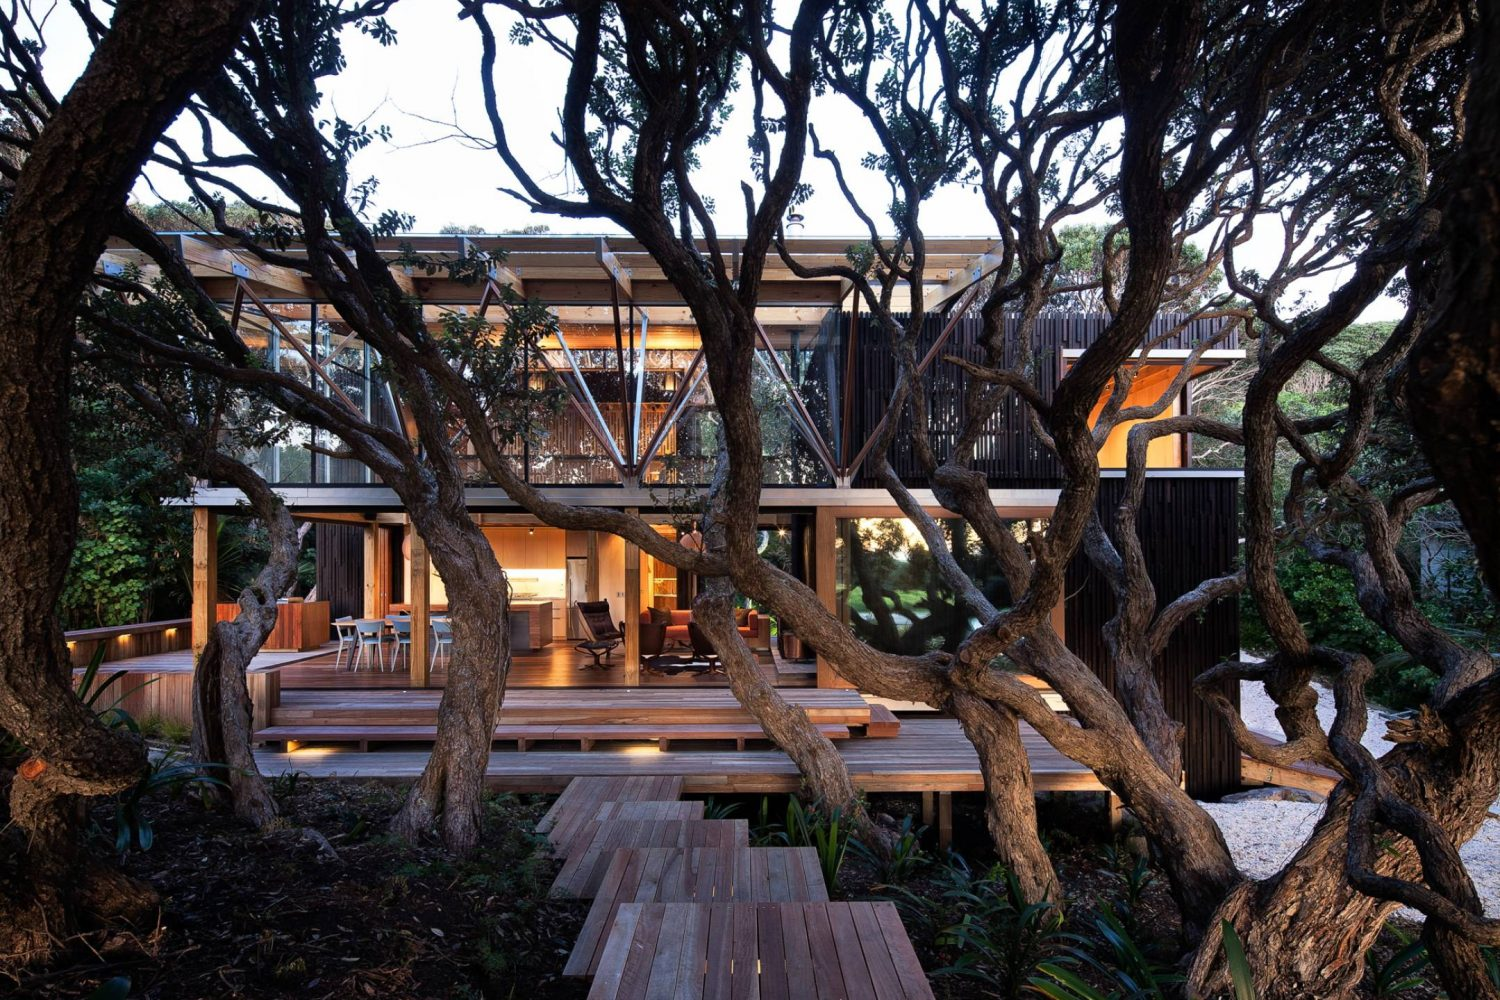 Under Pohutukawa Beach House by Herbst Architects